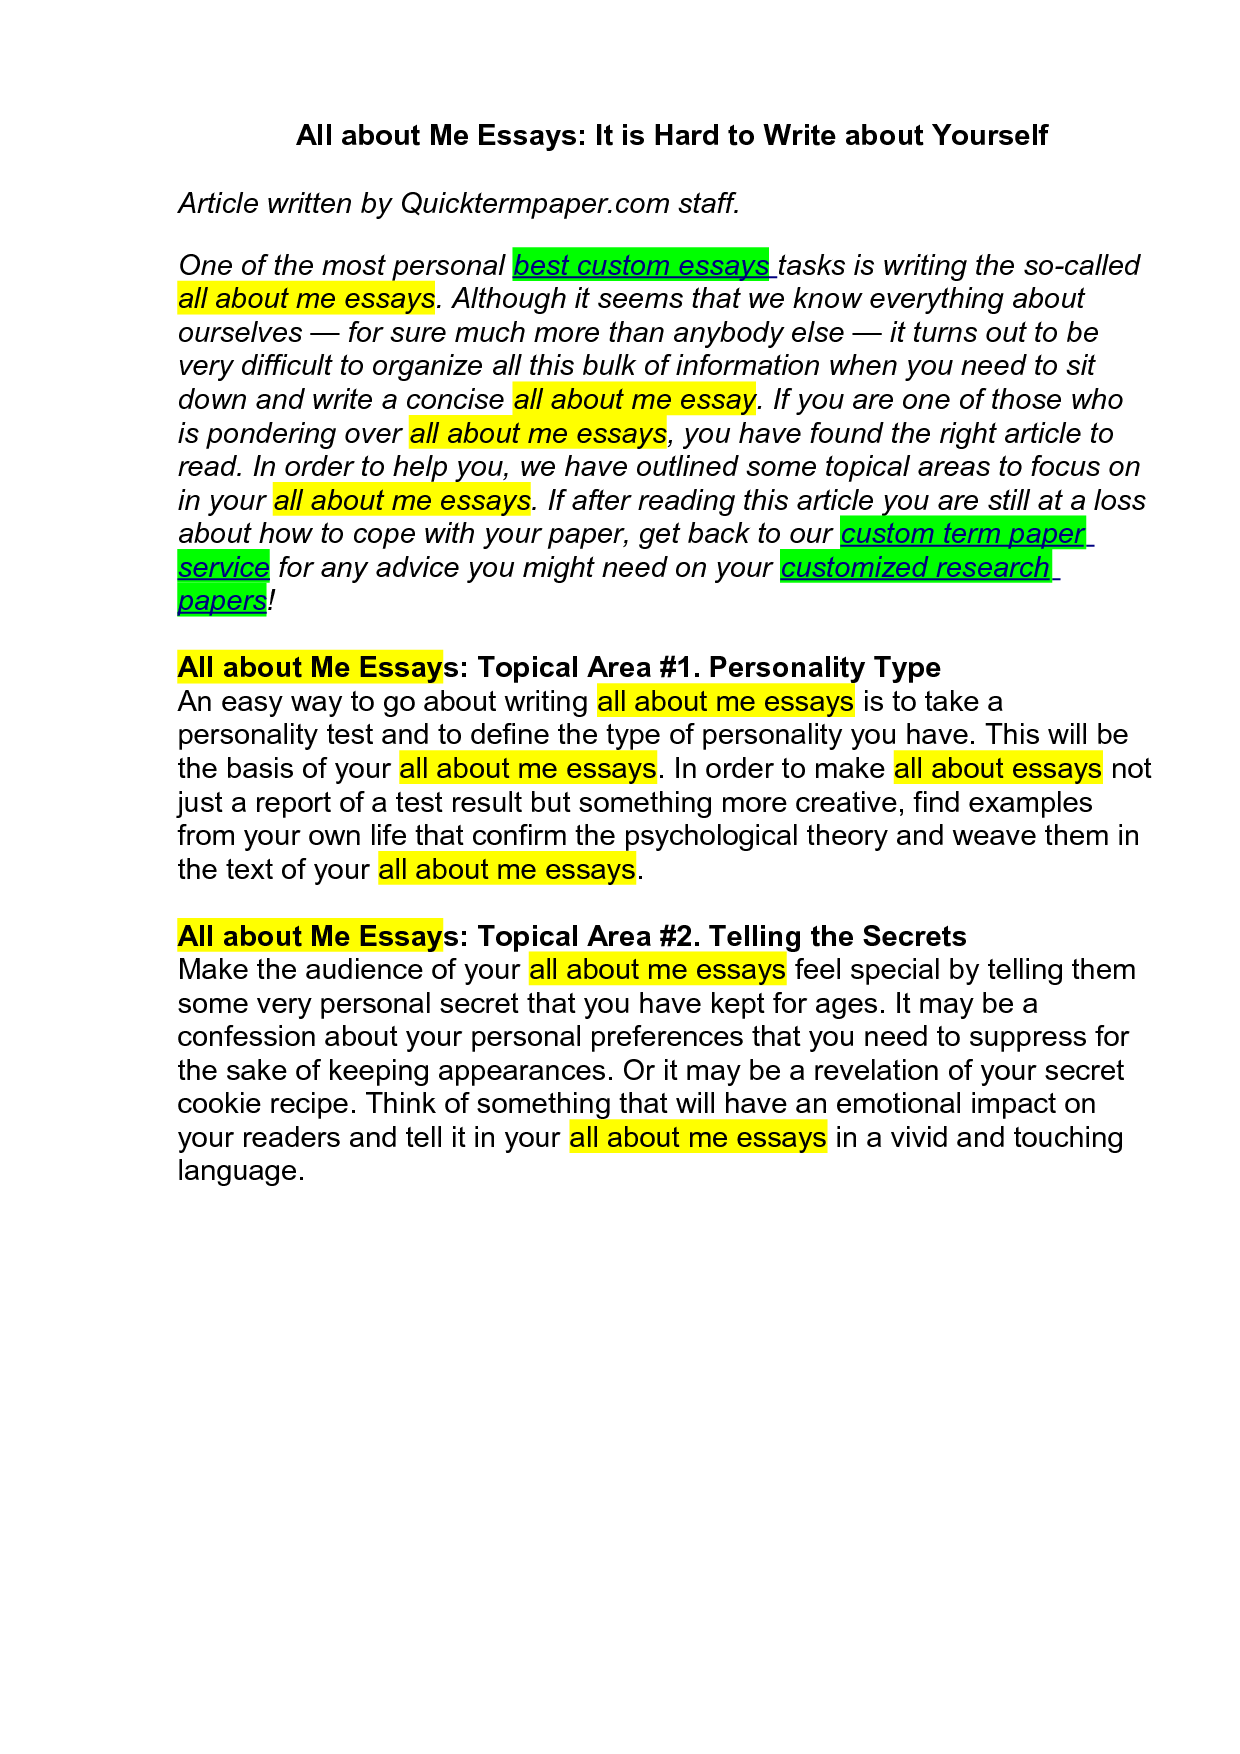 021 Essay Example How To Start An Amazing Analysis On A Book Ways With Question About Two Books Full